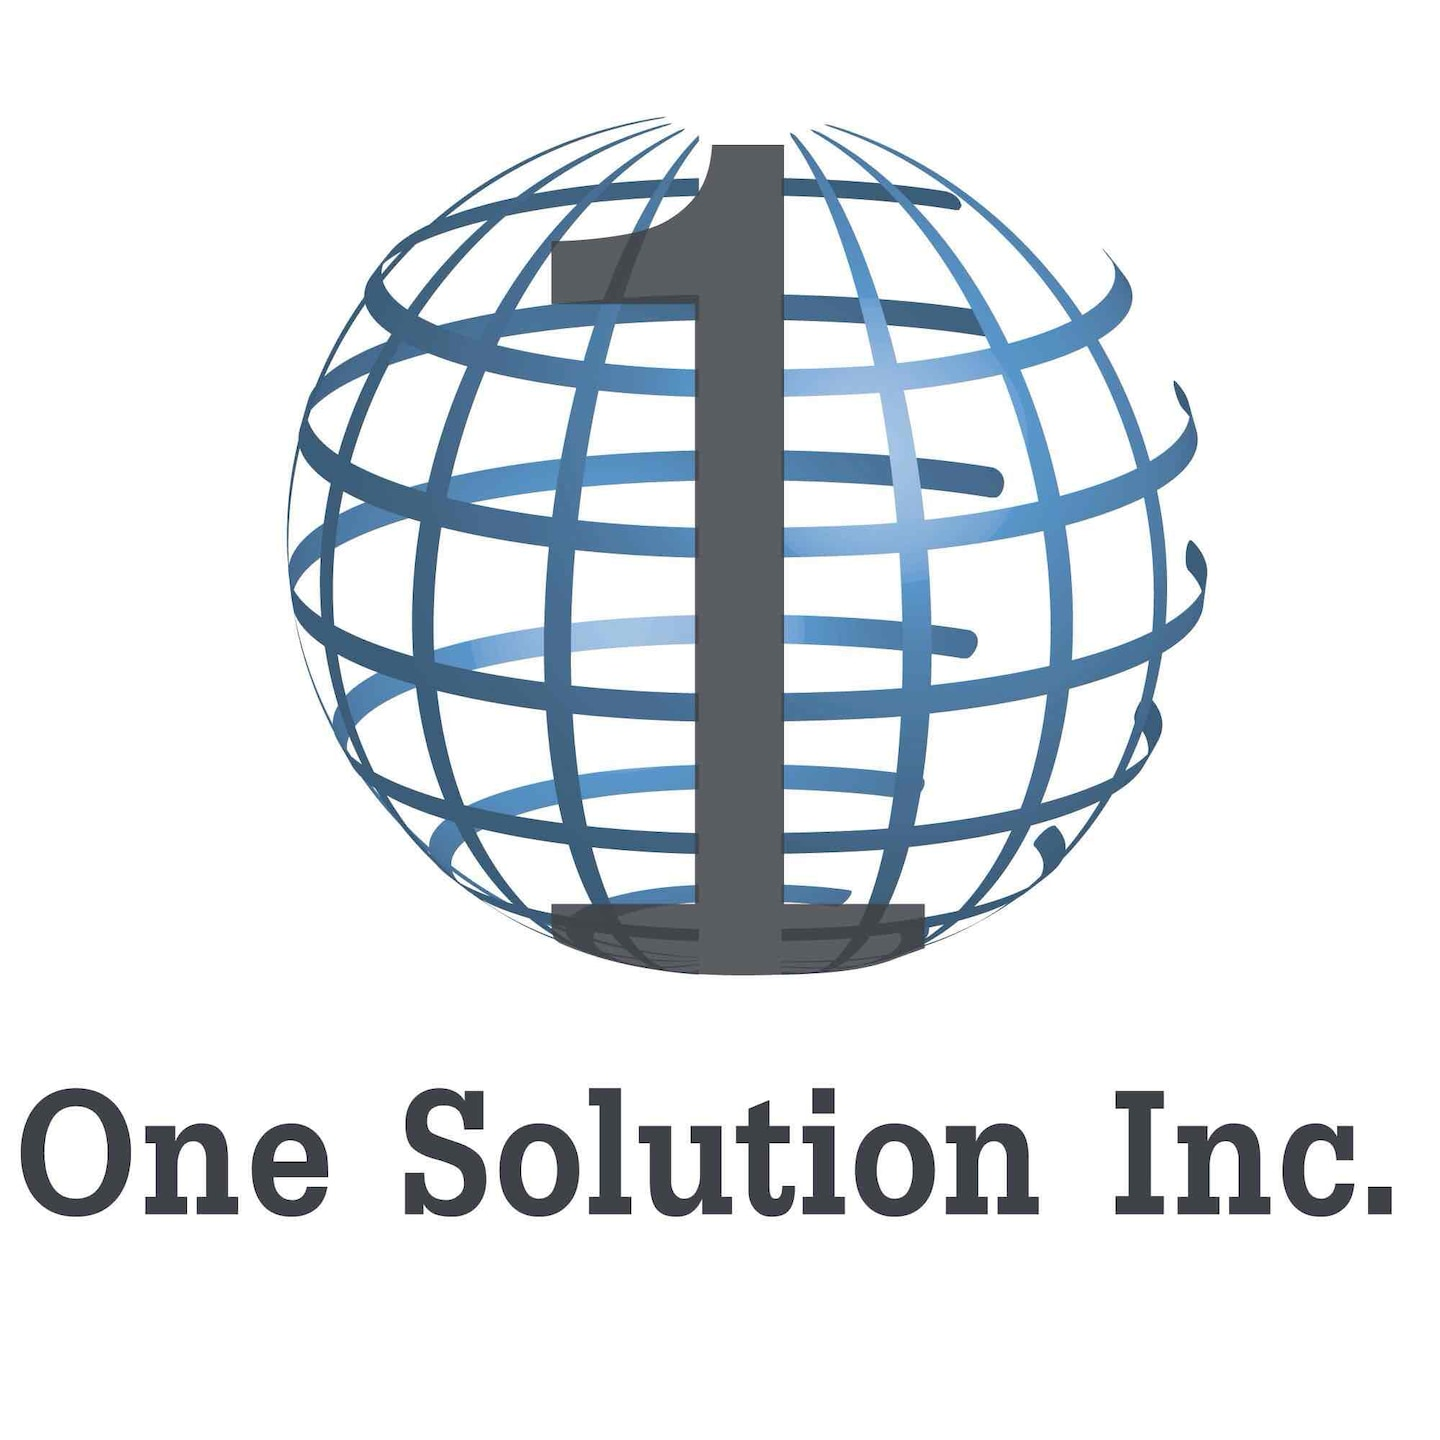 One Solution Inc.